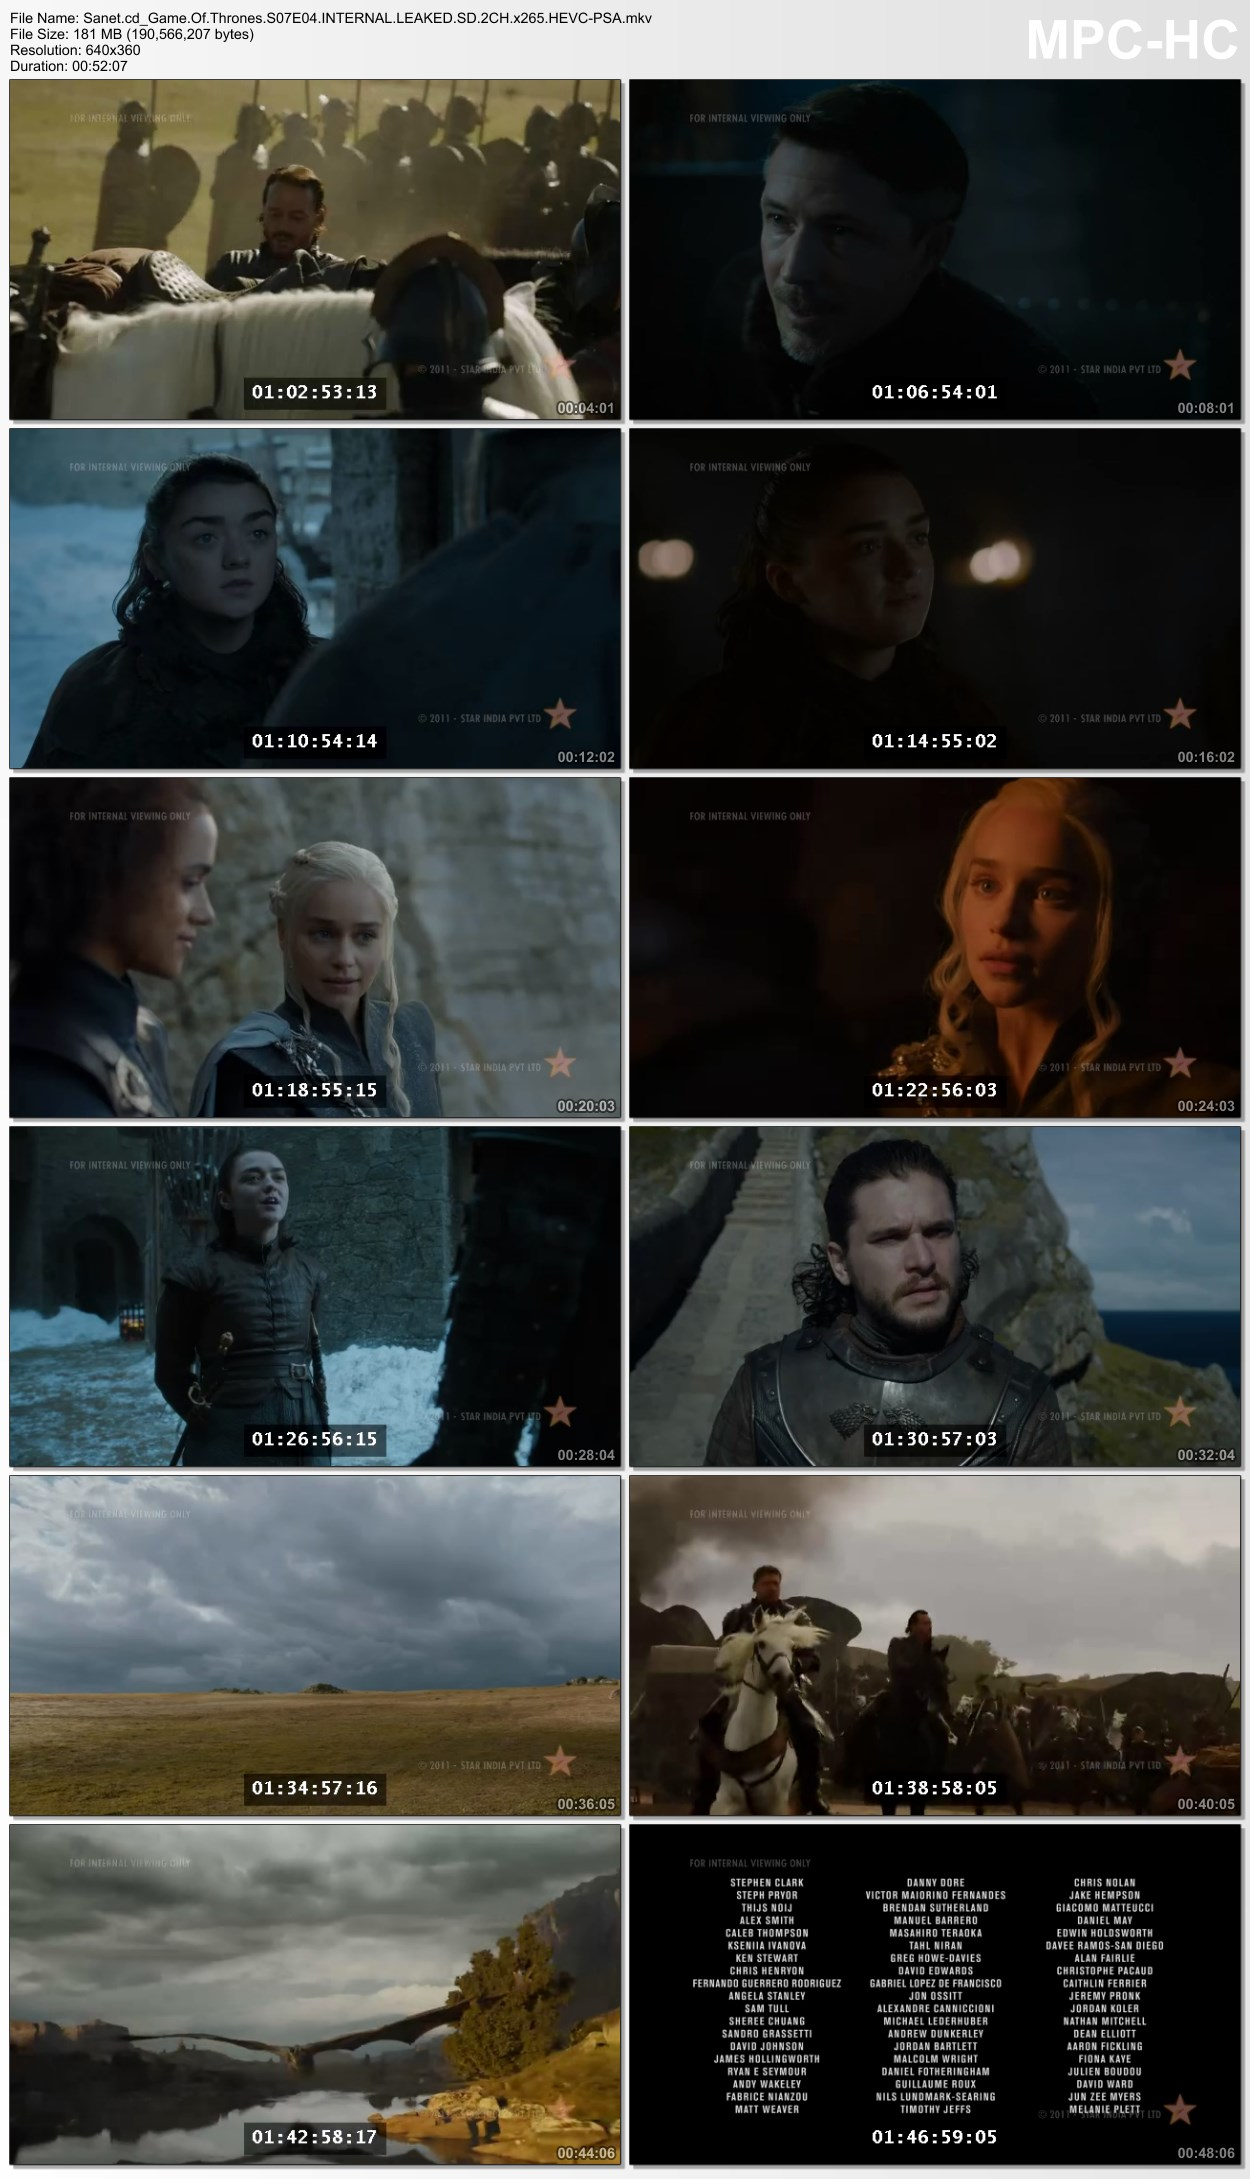 game of thrones s07e04 leaked